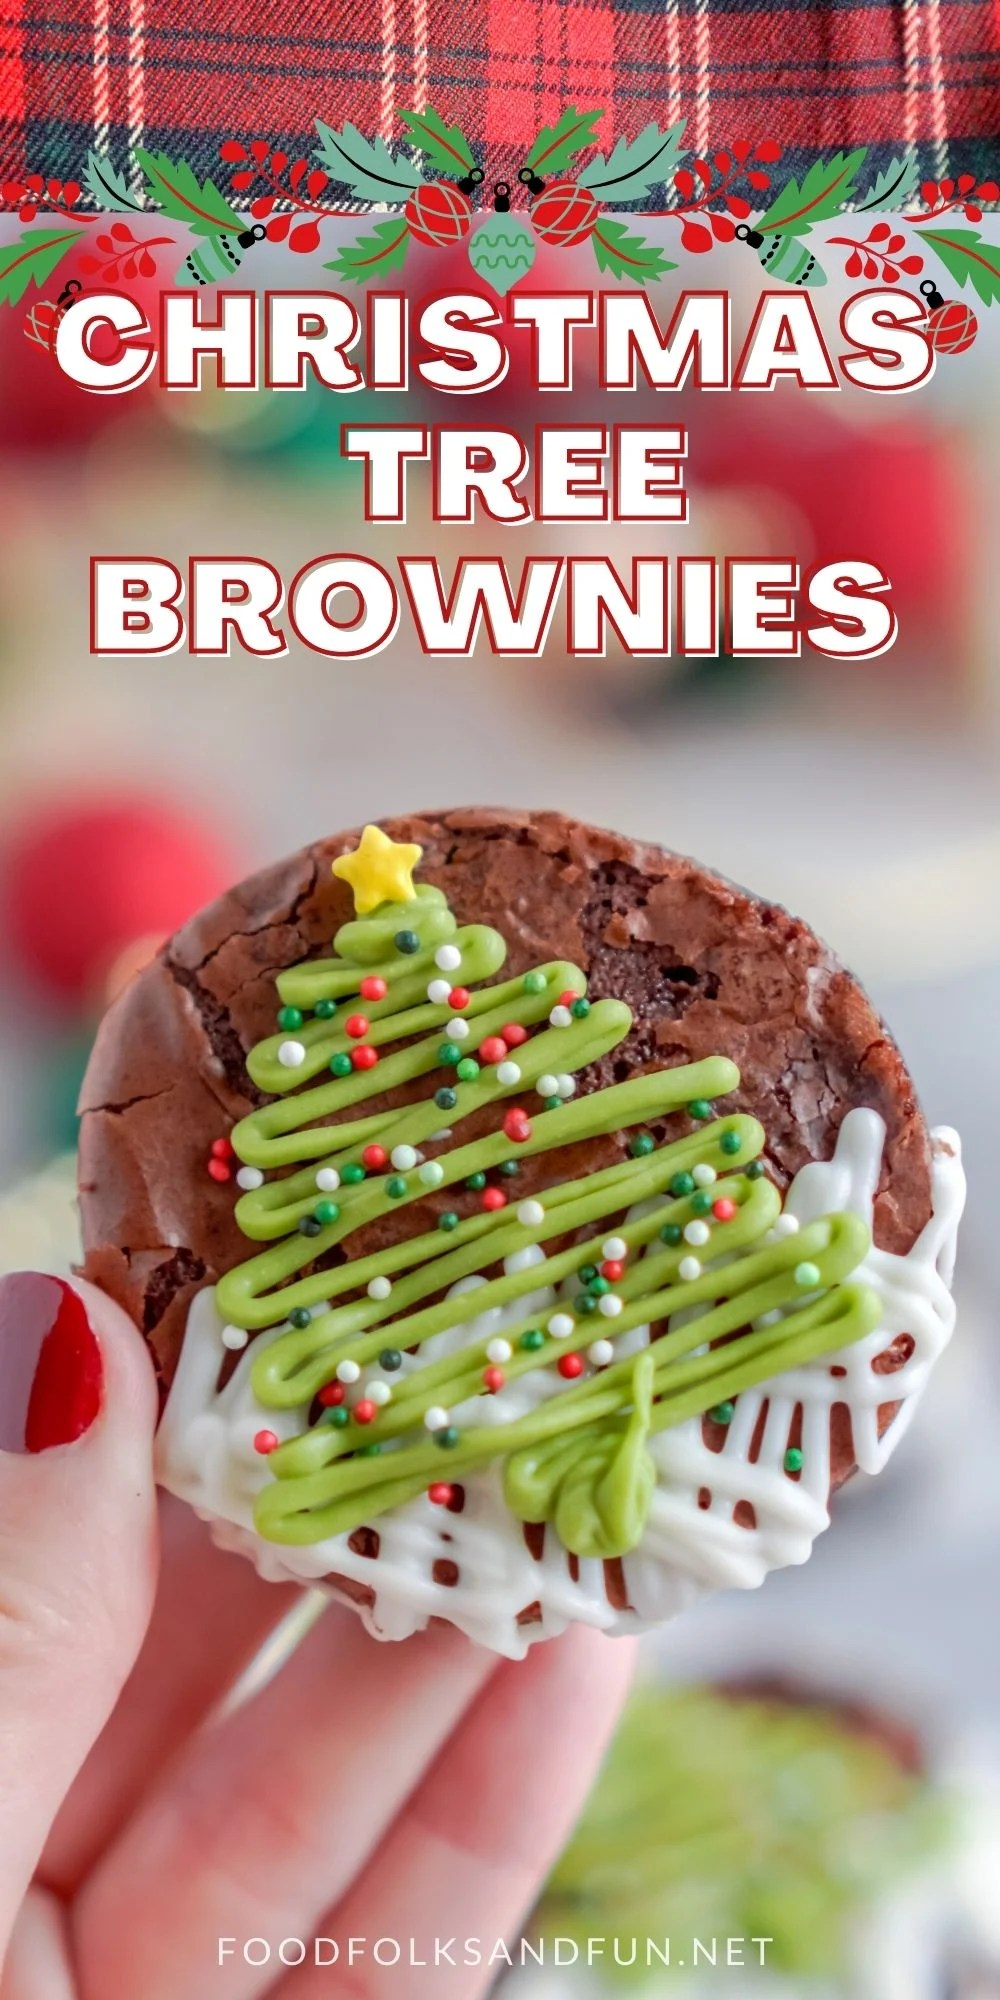 Christmas Tree Brownies are fun festive treats that are easy to make. They're perfect for holiday parties and adding to Christmas cookie trays. via @foodfolksandfun